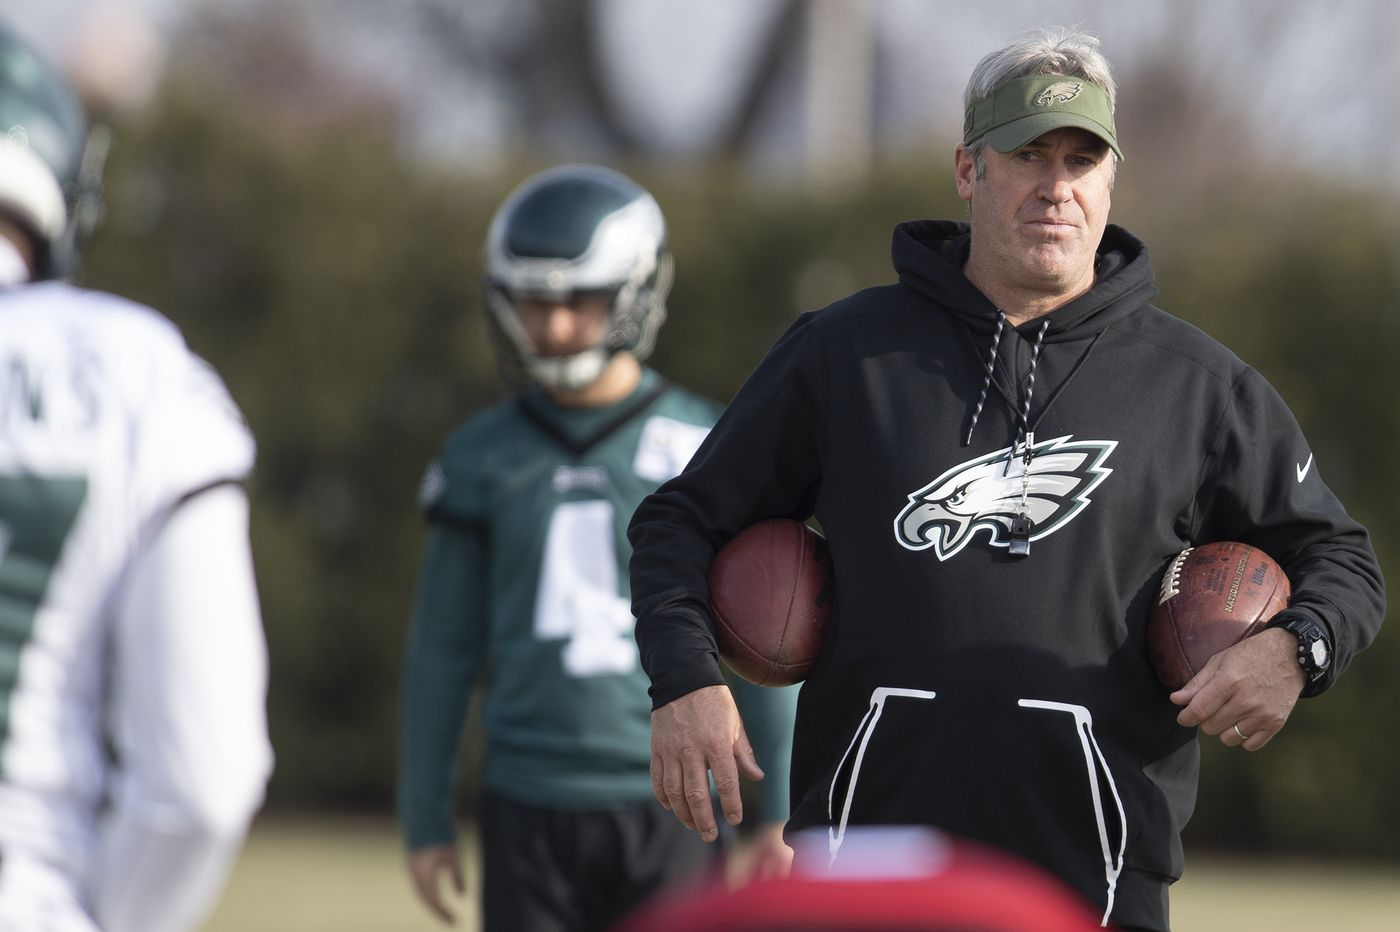 Doug Pederson made the Eagles look amateurish in discussing Carson Wentz's back injury | Marcus Hayes